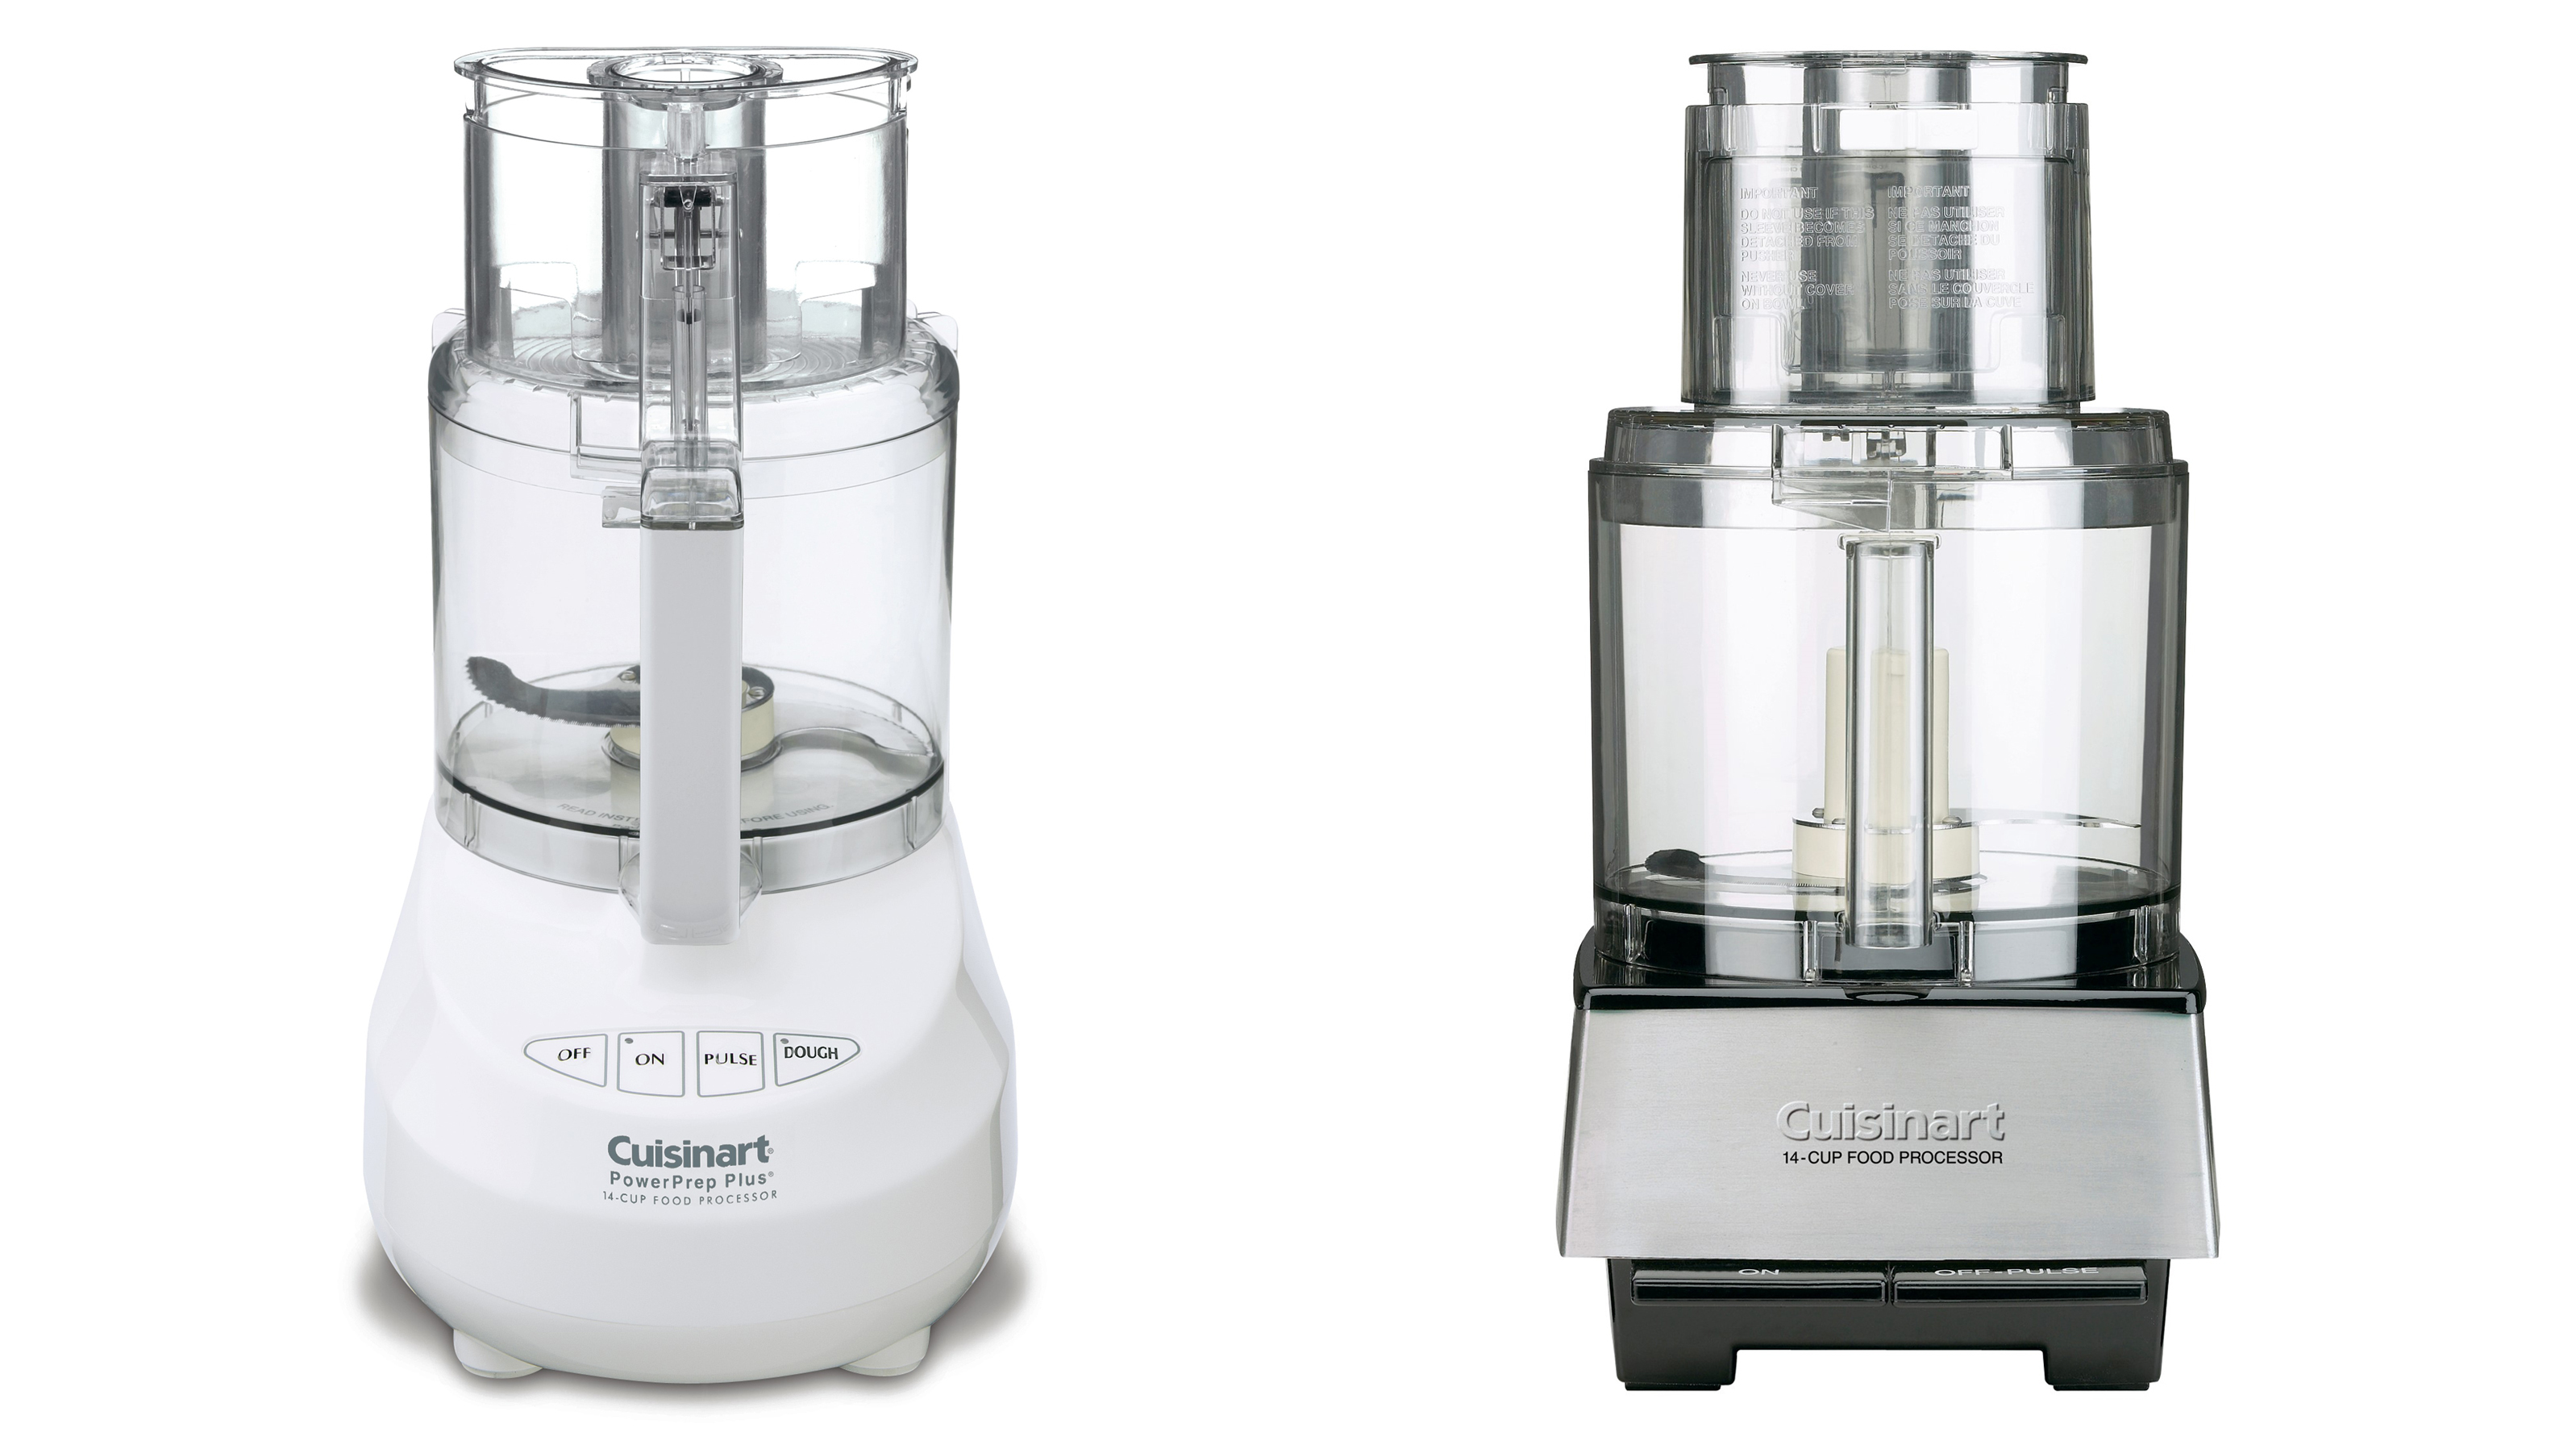 Cuisinart Recalls Millions Of Food Processor Blades After 30 Reports Of Lacerations